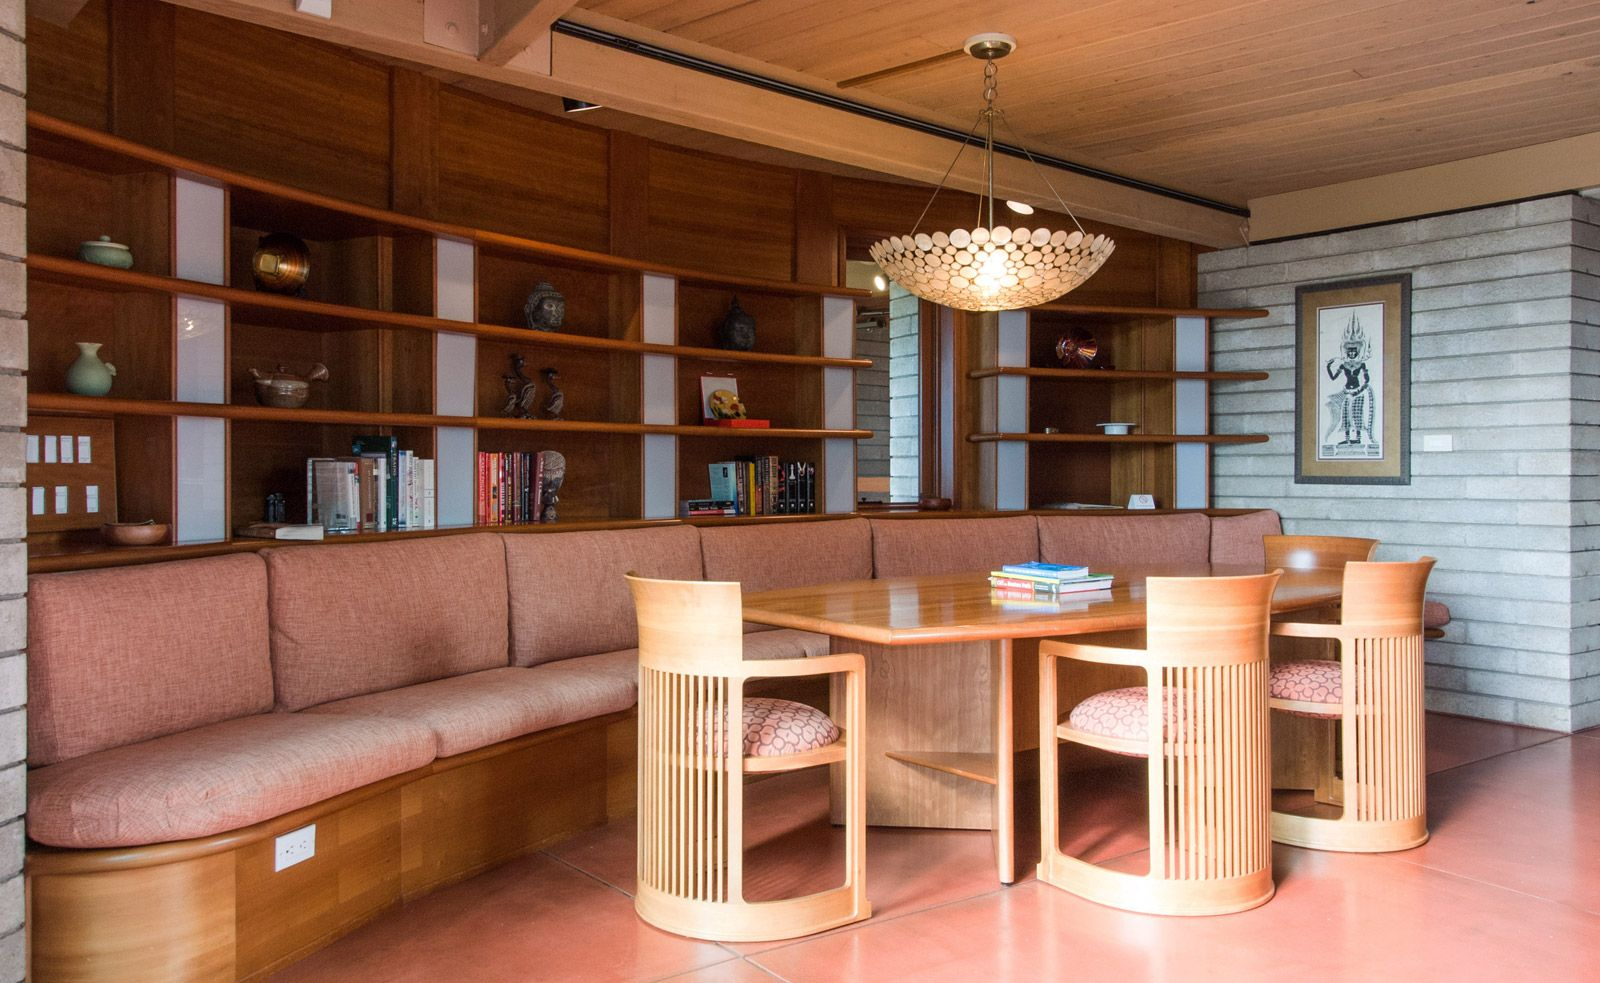 What We Learned From Staying In A Frank Lloyd Wright